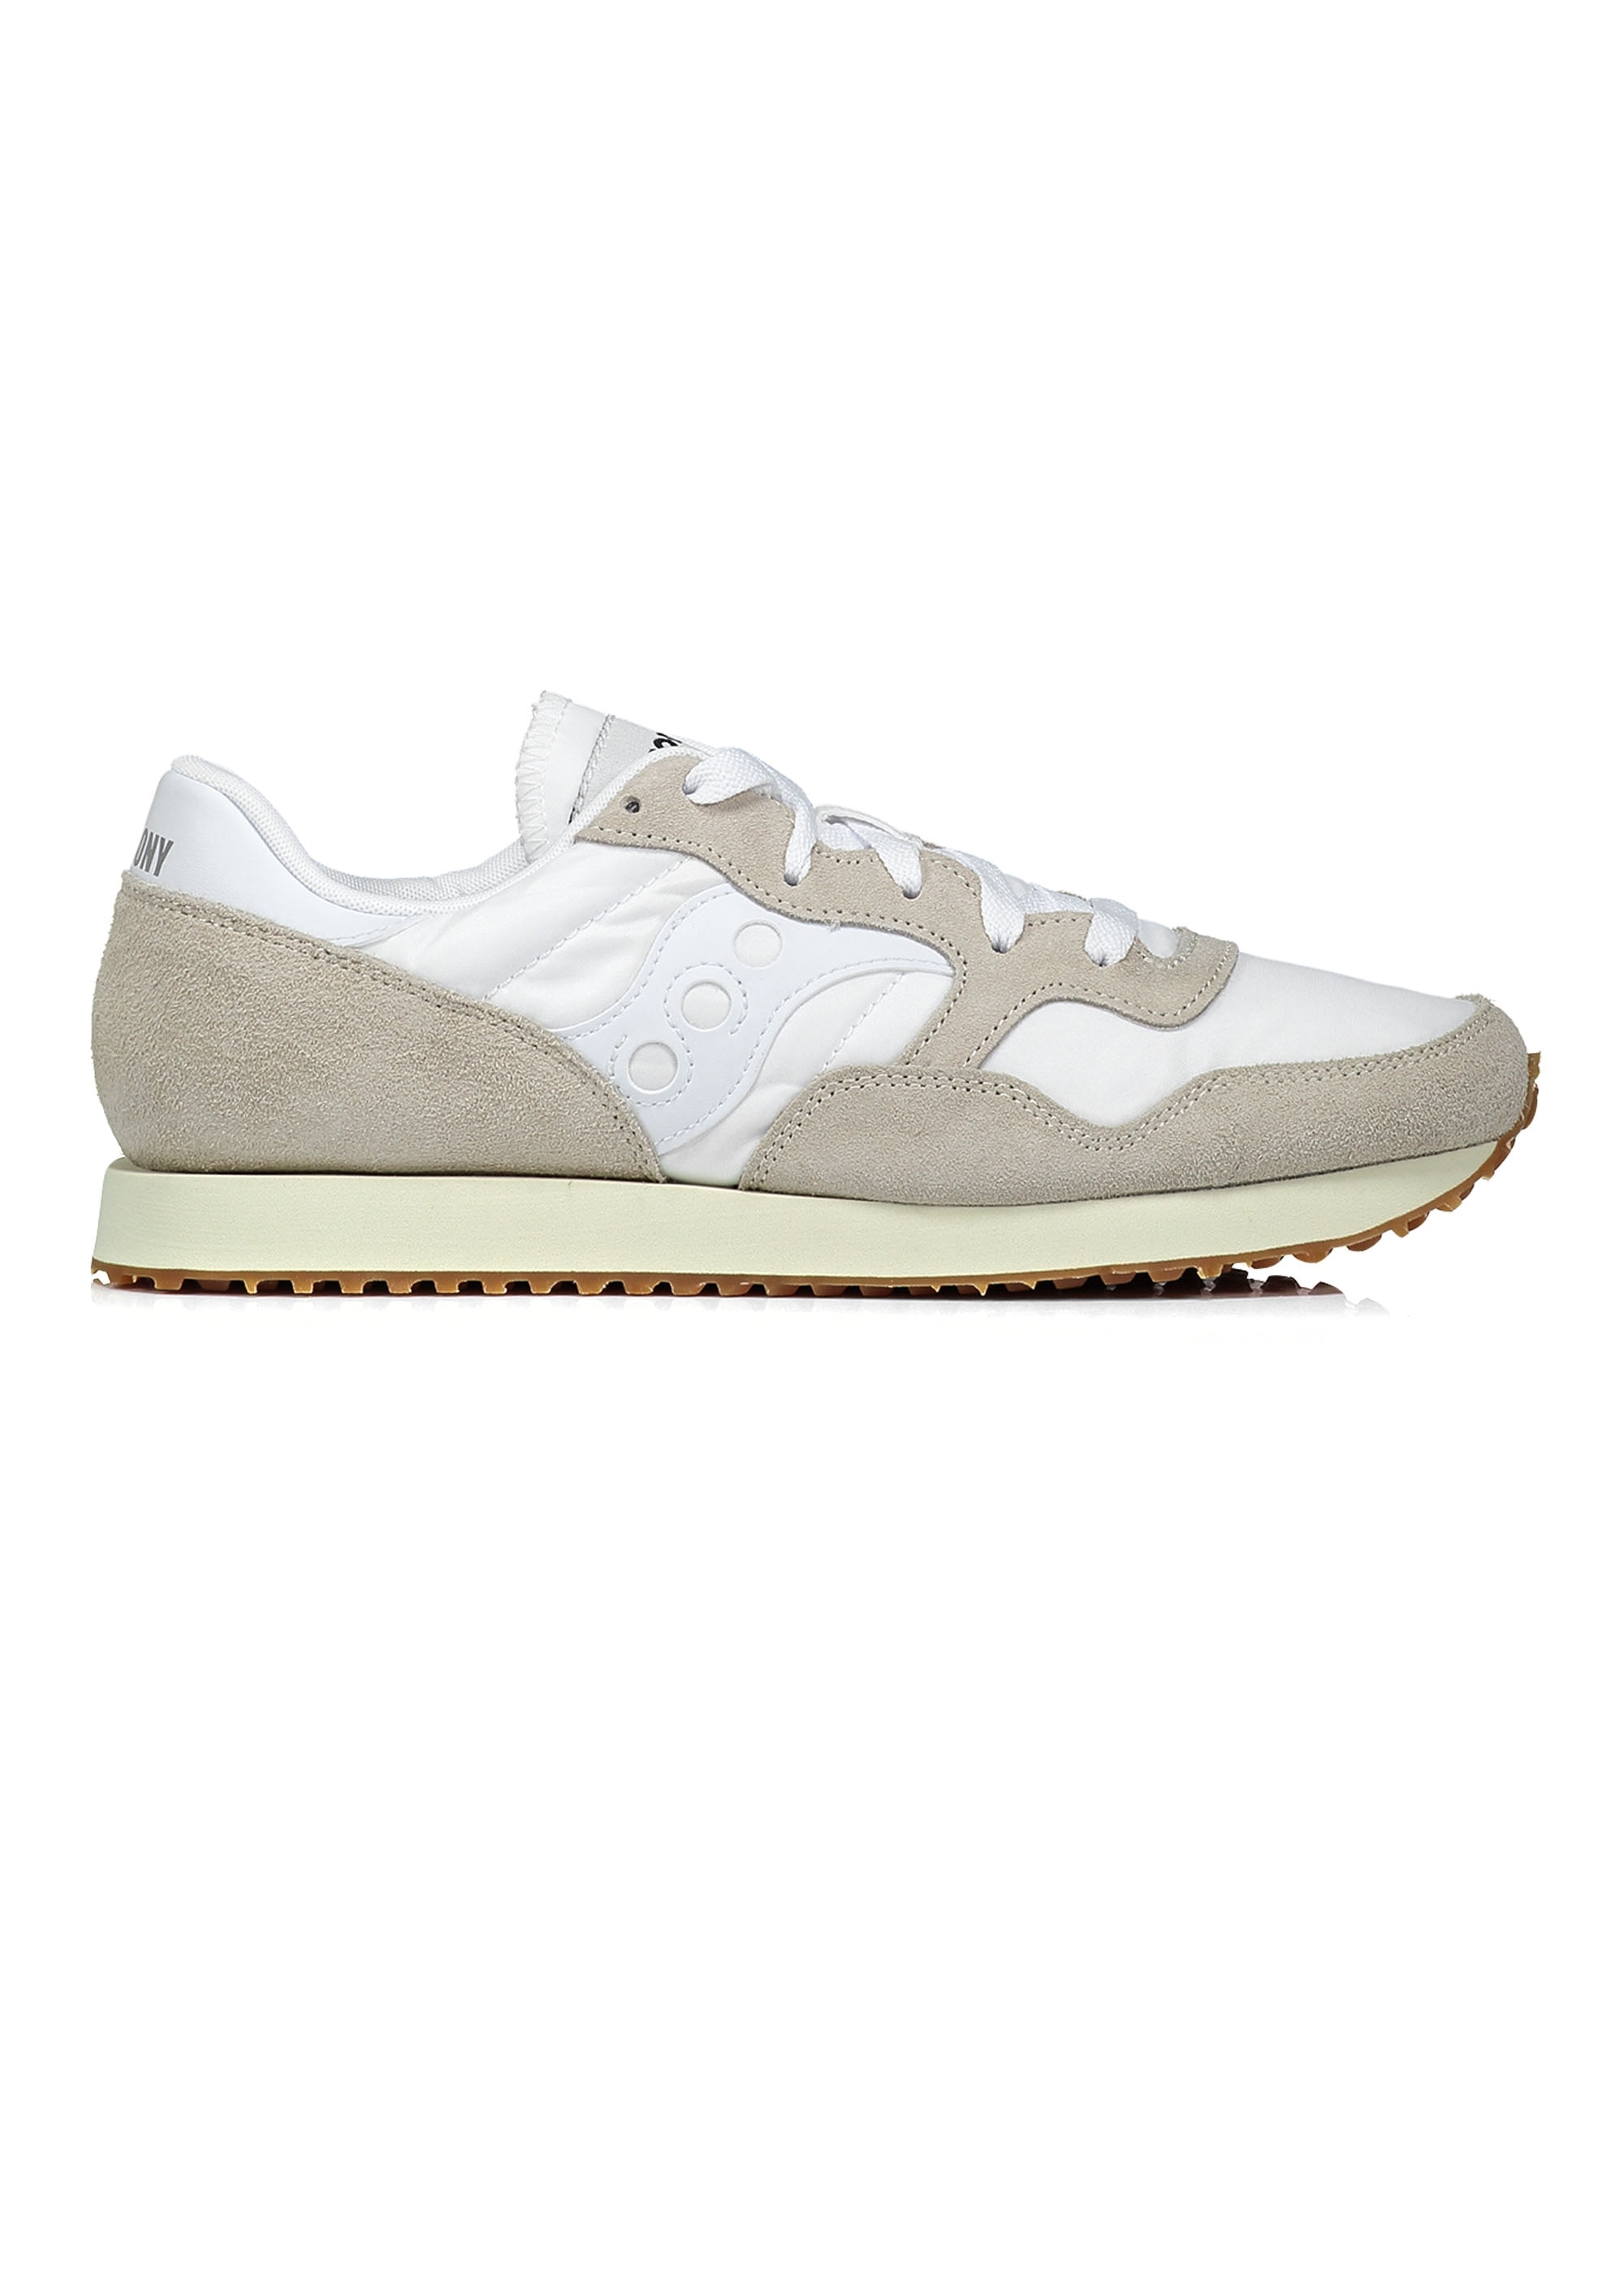 c3d6bfe2ca26 Saucony DXN Trainer - White   Gum - Trainers from Triads UK